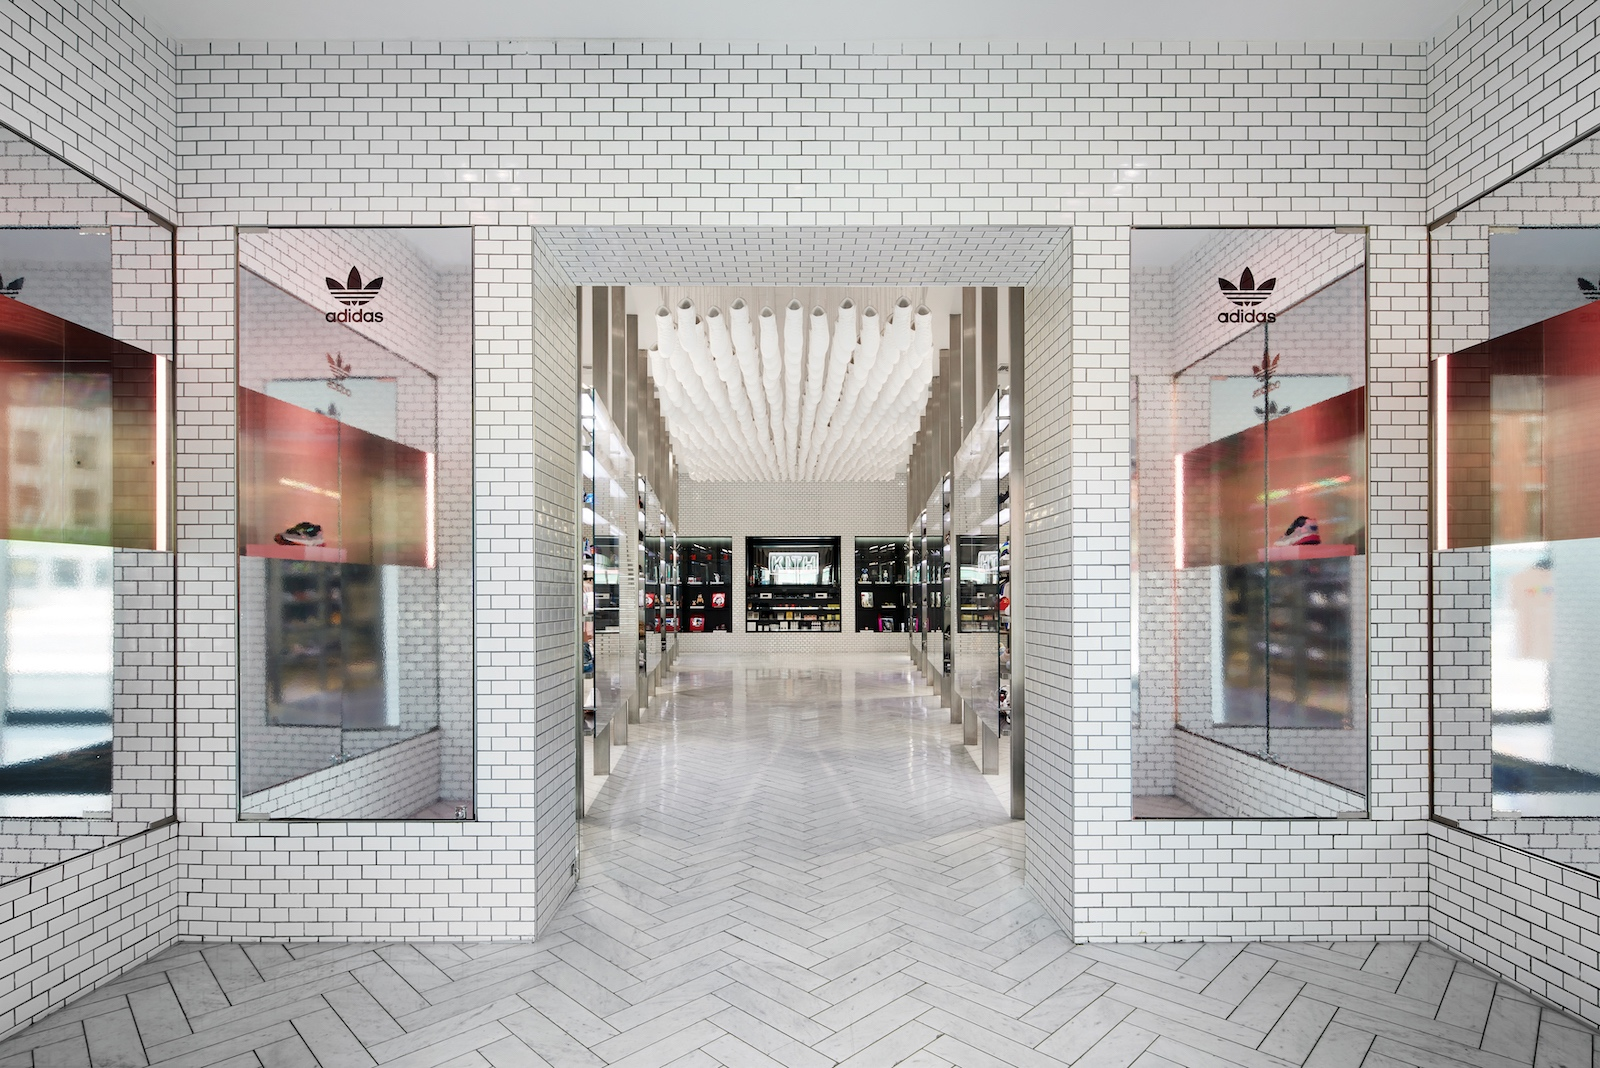 A white tiled retail space with iridescent adidas branding over mirrored surfaces and Falcon shoes in vitrine displays.